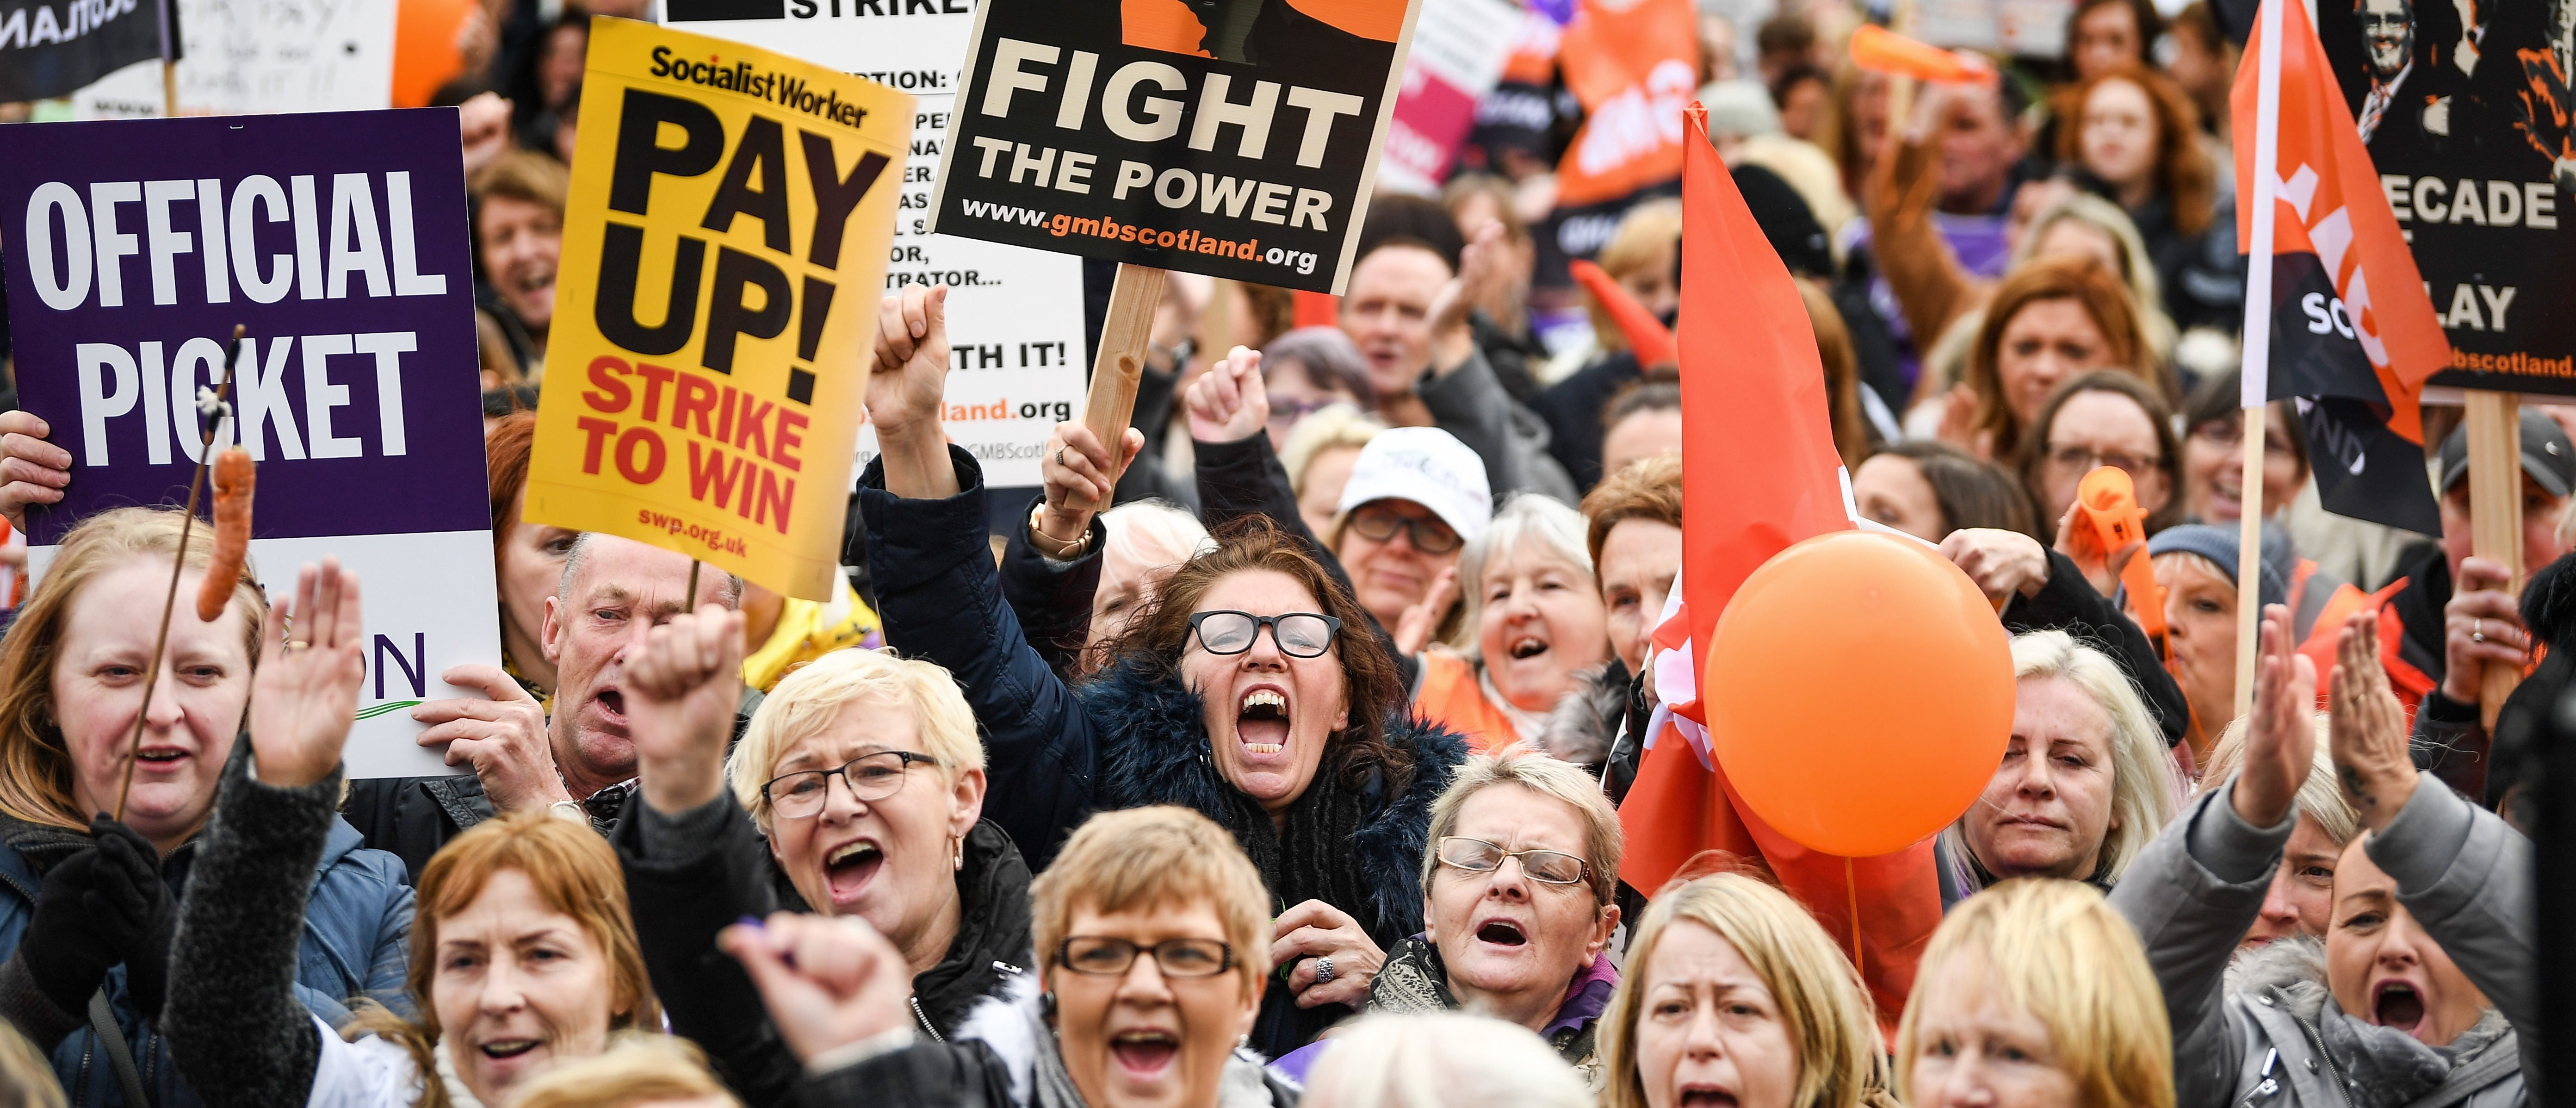 GLASGOW, SCOTLAND - OCTOBER 23: Demonstrators hold placards as they attend a rally in George Square following a march for equal pay for Glasgow council workers on October 23, 2018 in Glasgow, Scotland. Schools and home-care services were disrupted as an estimated 8,000 workers joined a 48-hour walkout, aimed at spurring the settlement of equal-pay claims from thousands of female workers. (Photo by Jeff J Mitchell/Getty Images)